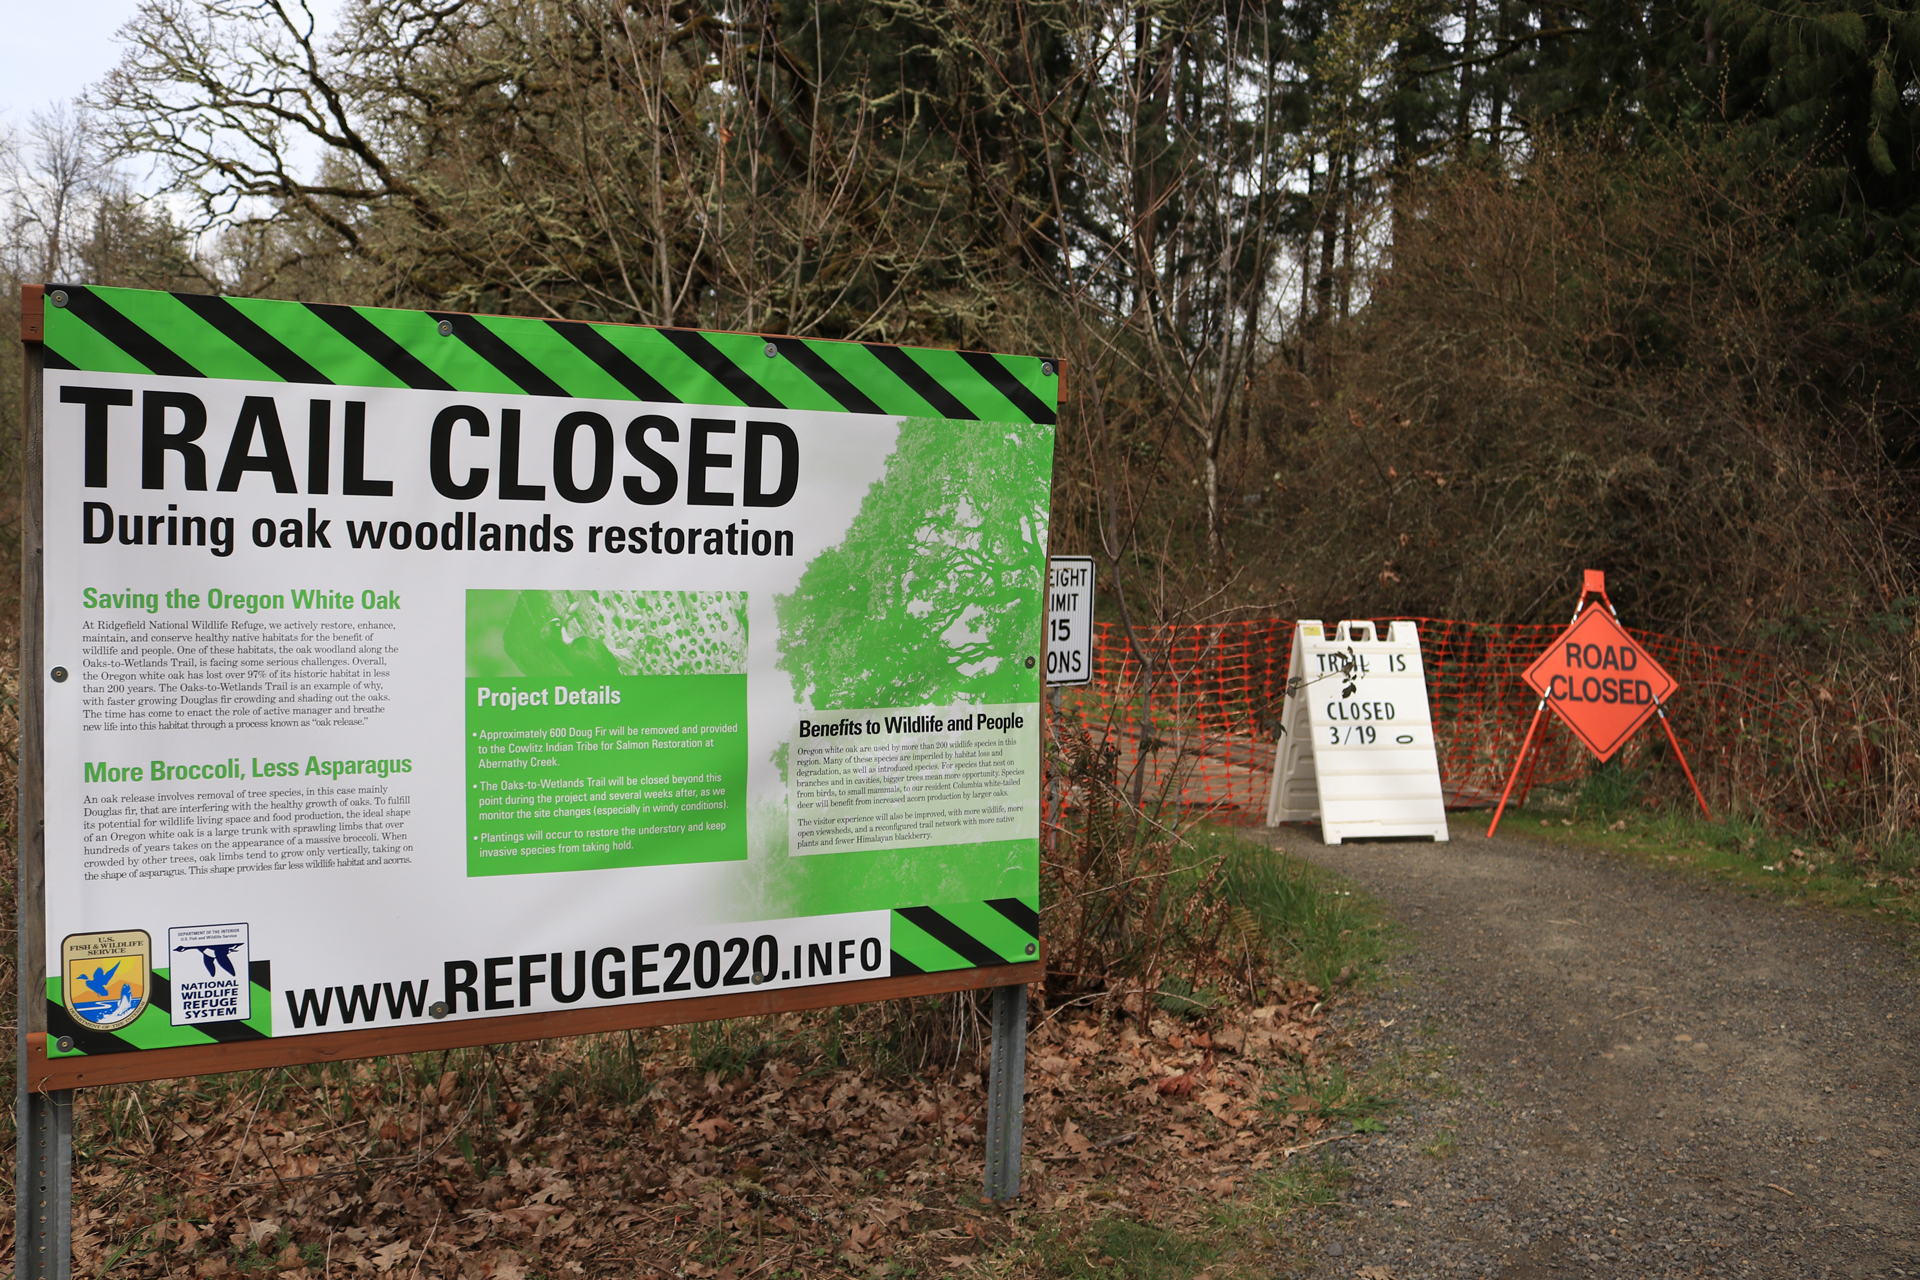 Trail Remains Closed